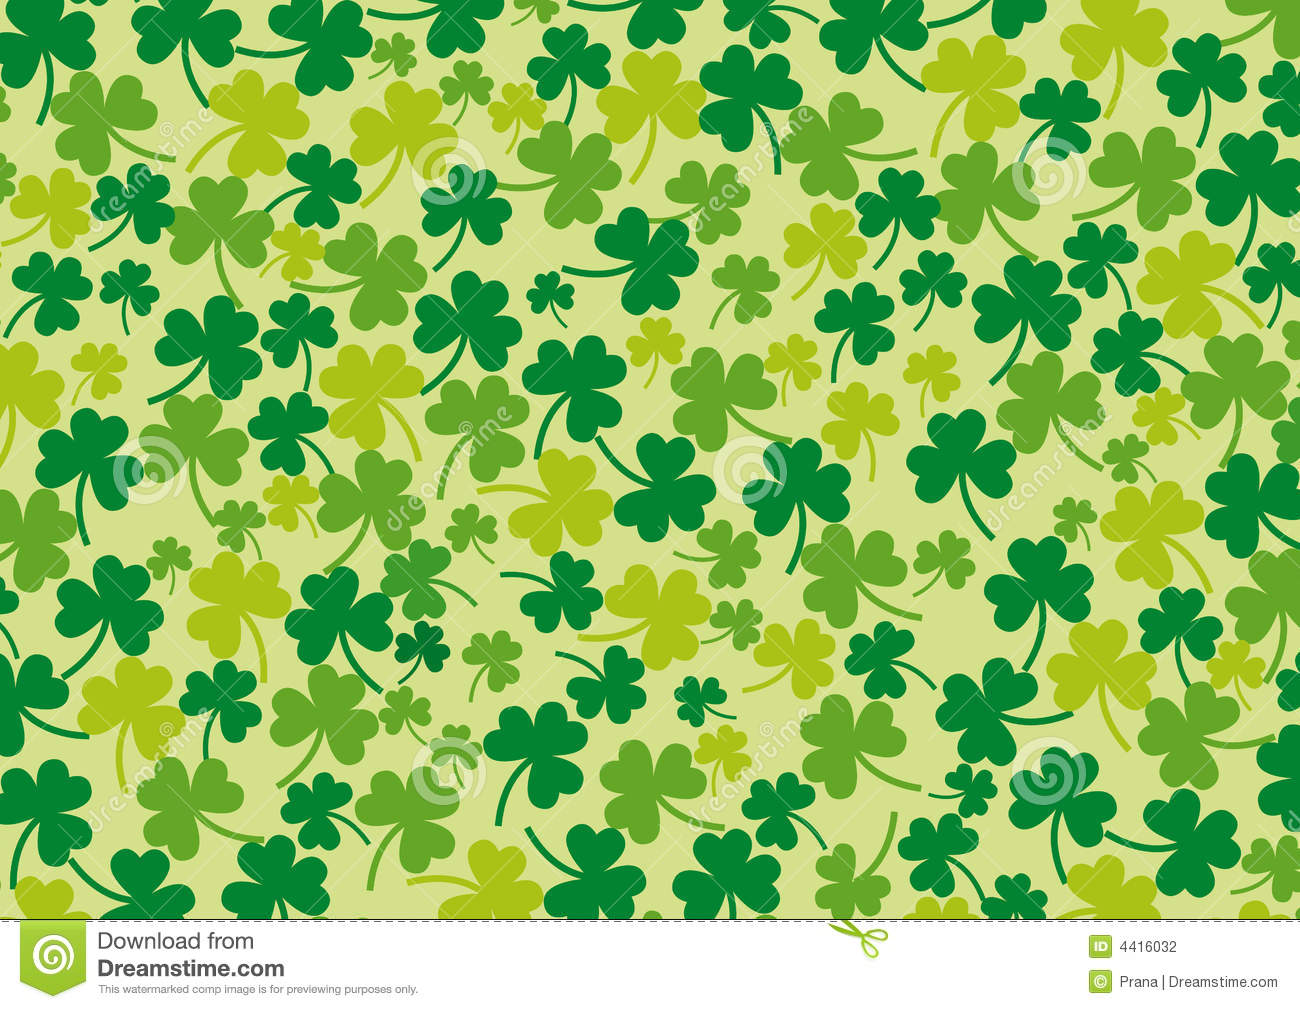 Clover Background. Stock Photography - Image: 4416032